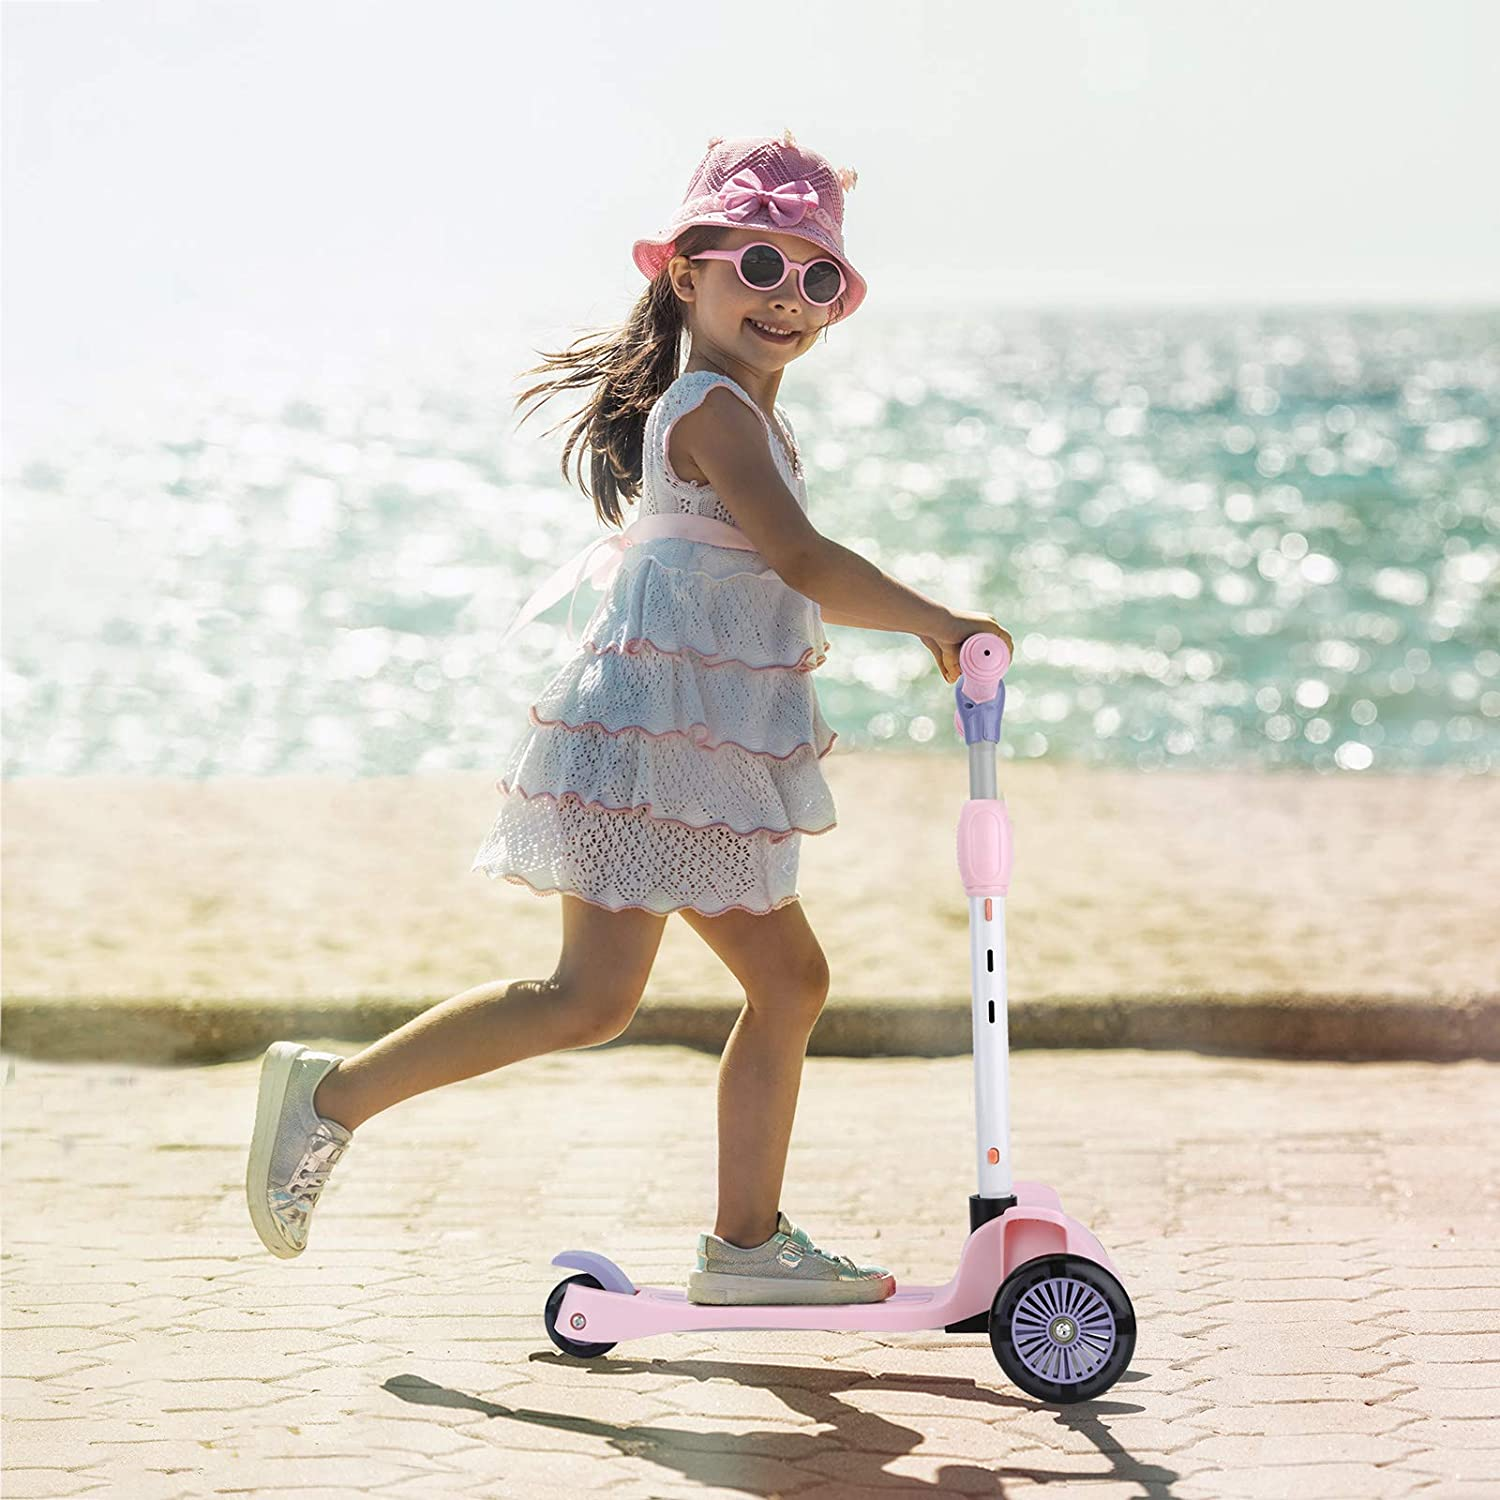 4 Adjustable Height /& Foldable Design Toddler Scooters Sit or Stand Ride for Boys /& Girls 2-10 Years Old 3 Wheel Kick Scooter for Kids Wheelive 3-in-1 Kick Scooter with Removable Seat